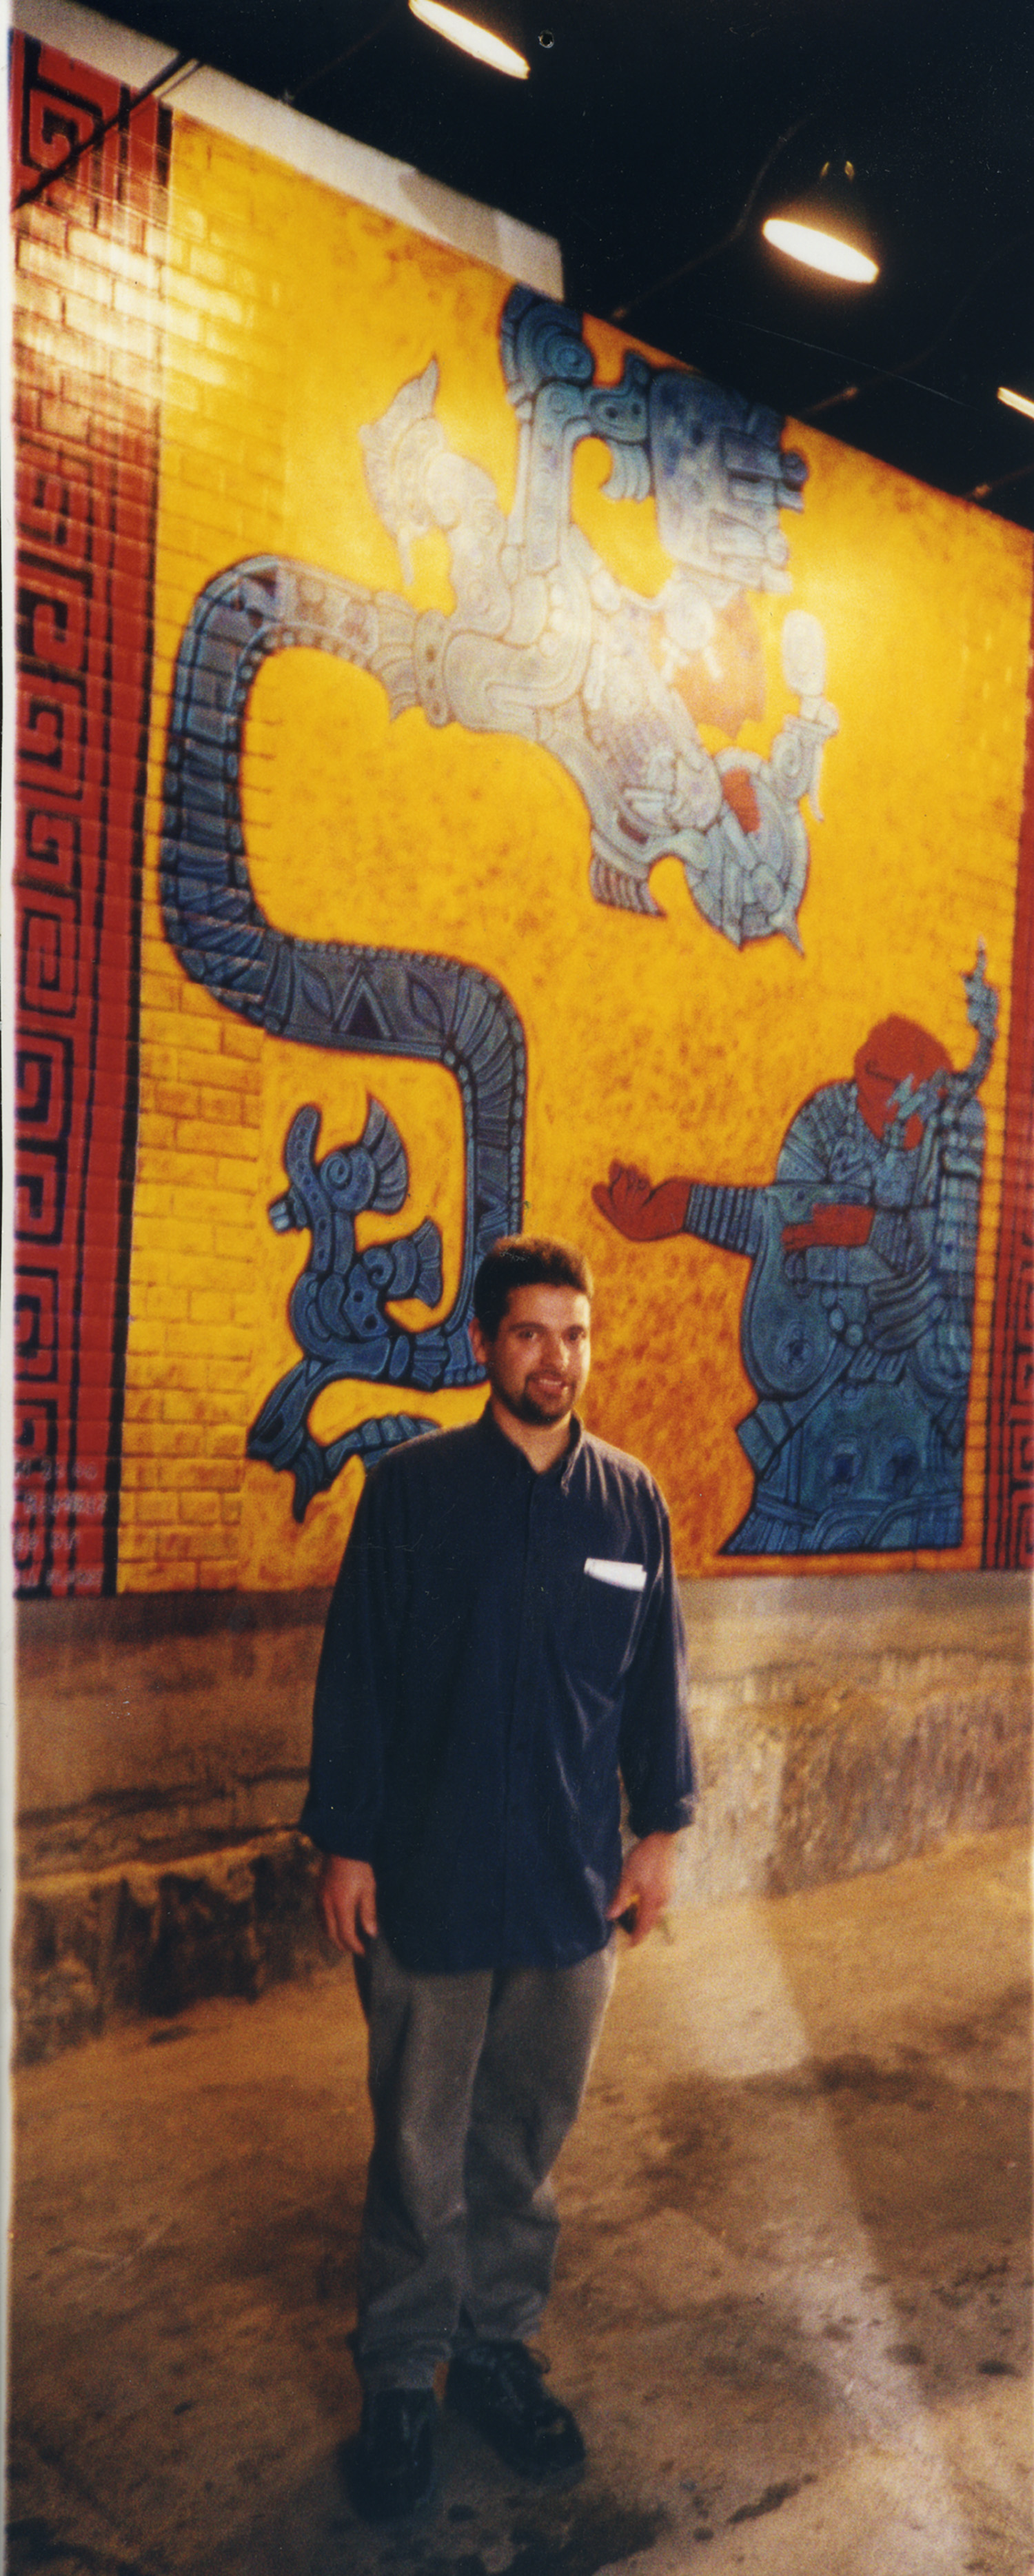 On the set in east los, with my mural Lady Xoc, painted for the set of American Family, PBS, 2001.